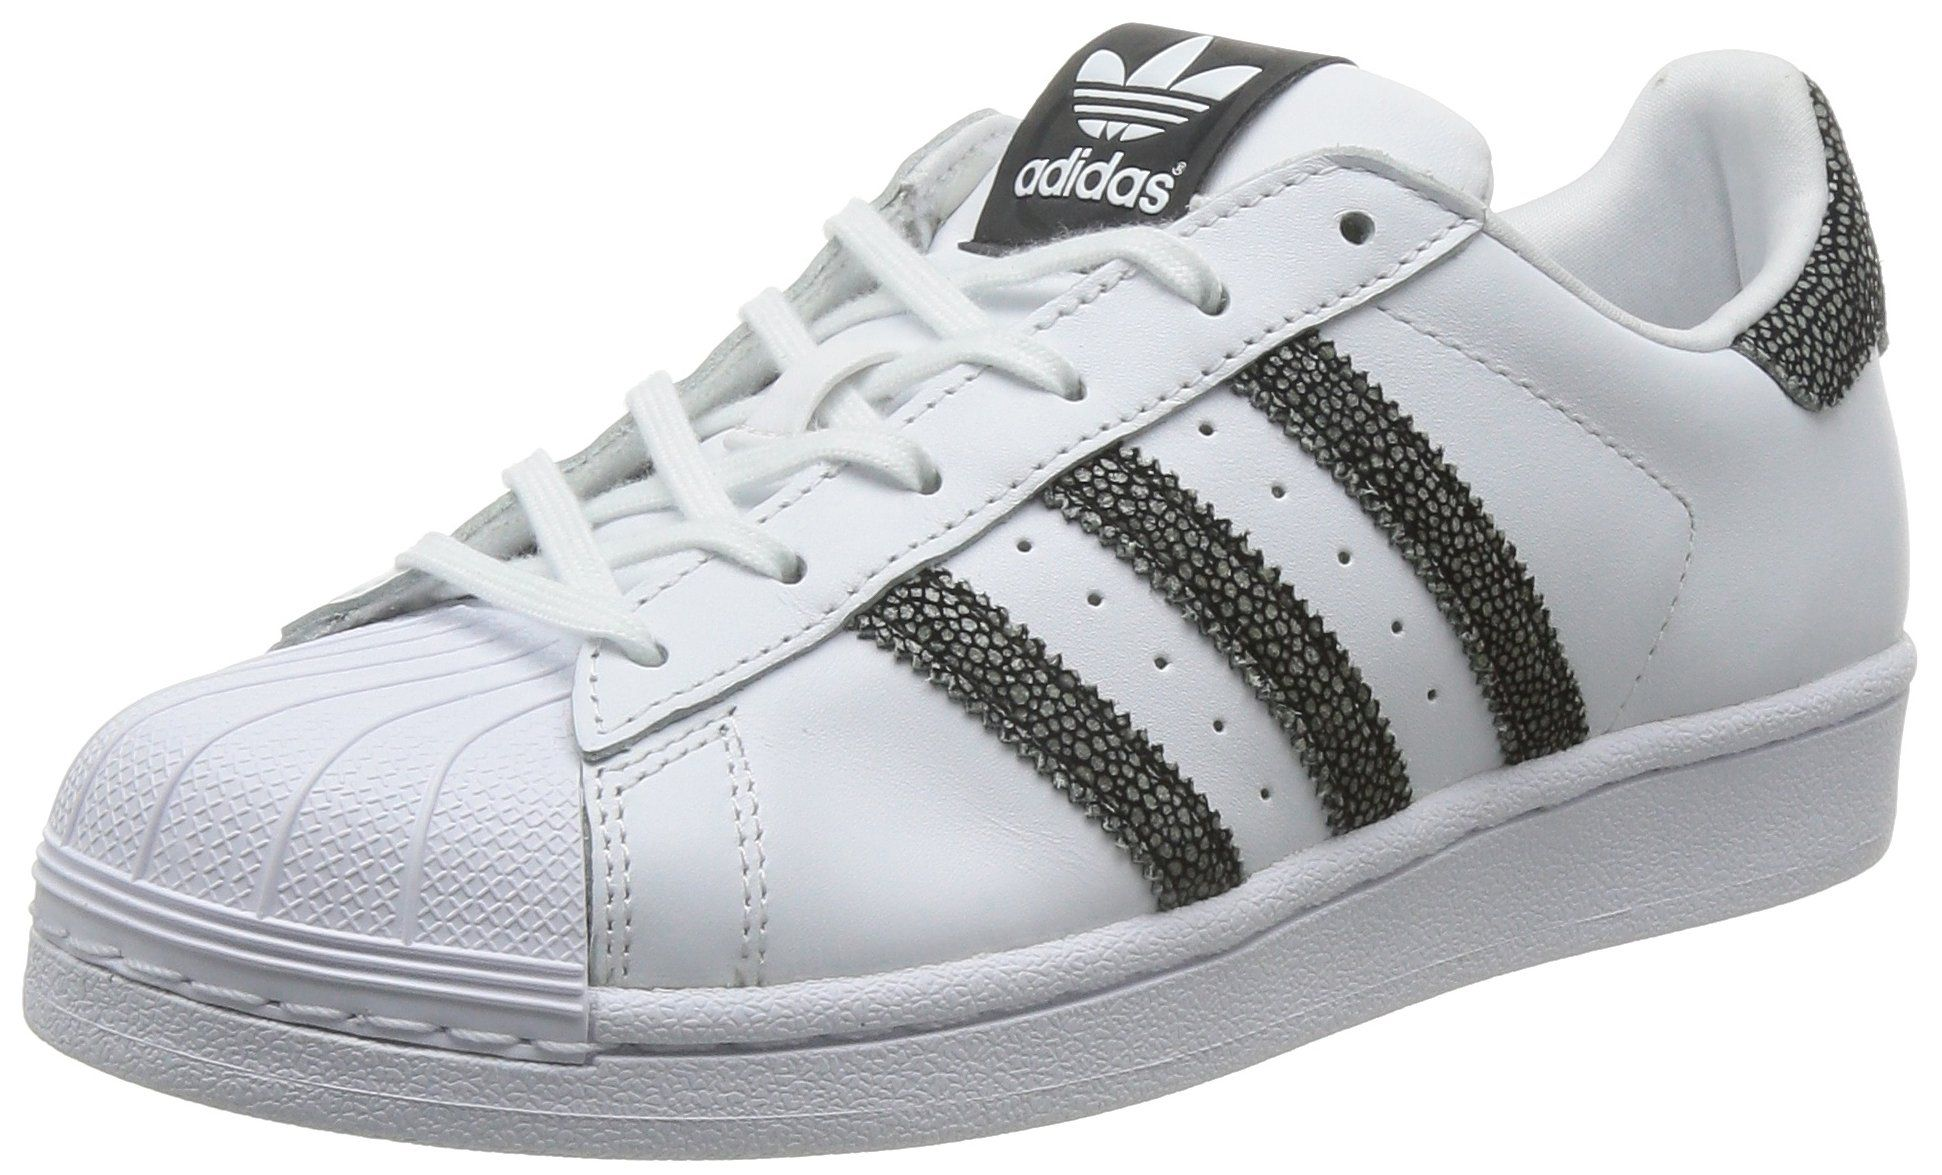 newest 3072c 4c555 adidas Superstar W - Zapatillas de running para mujer, color blanco   negro,  talla 38 2 3